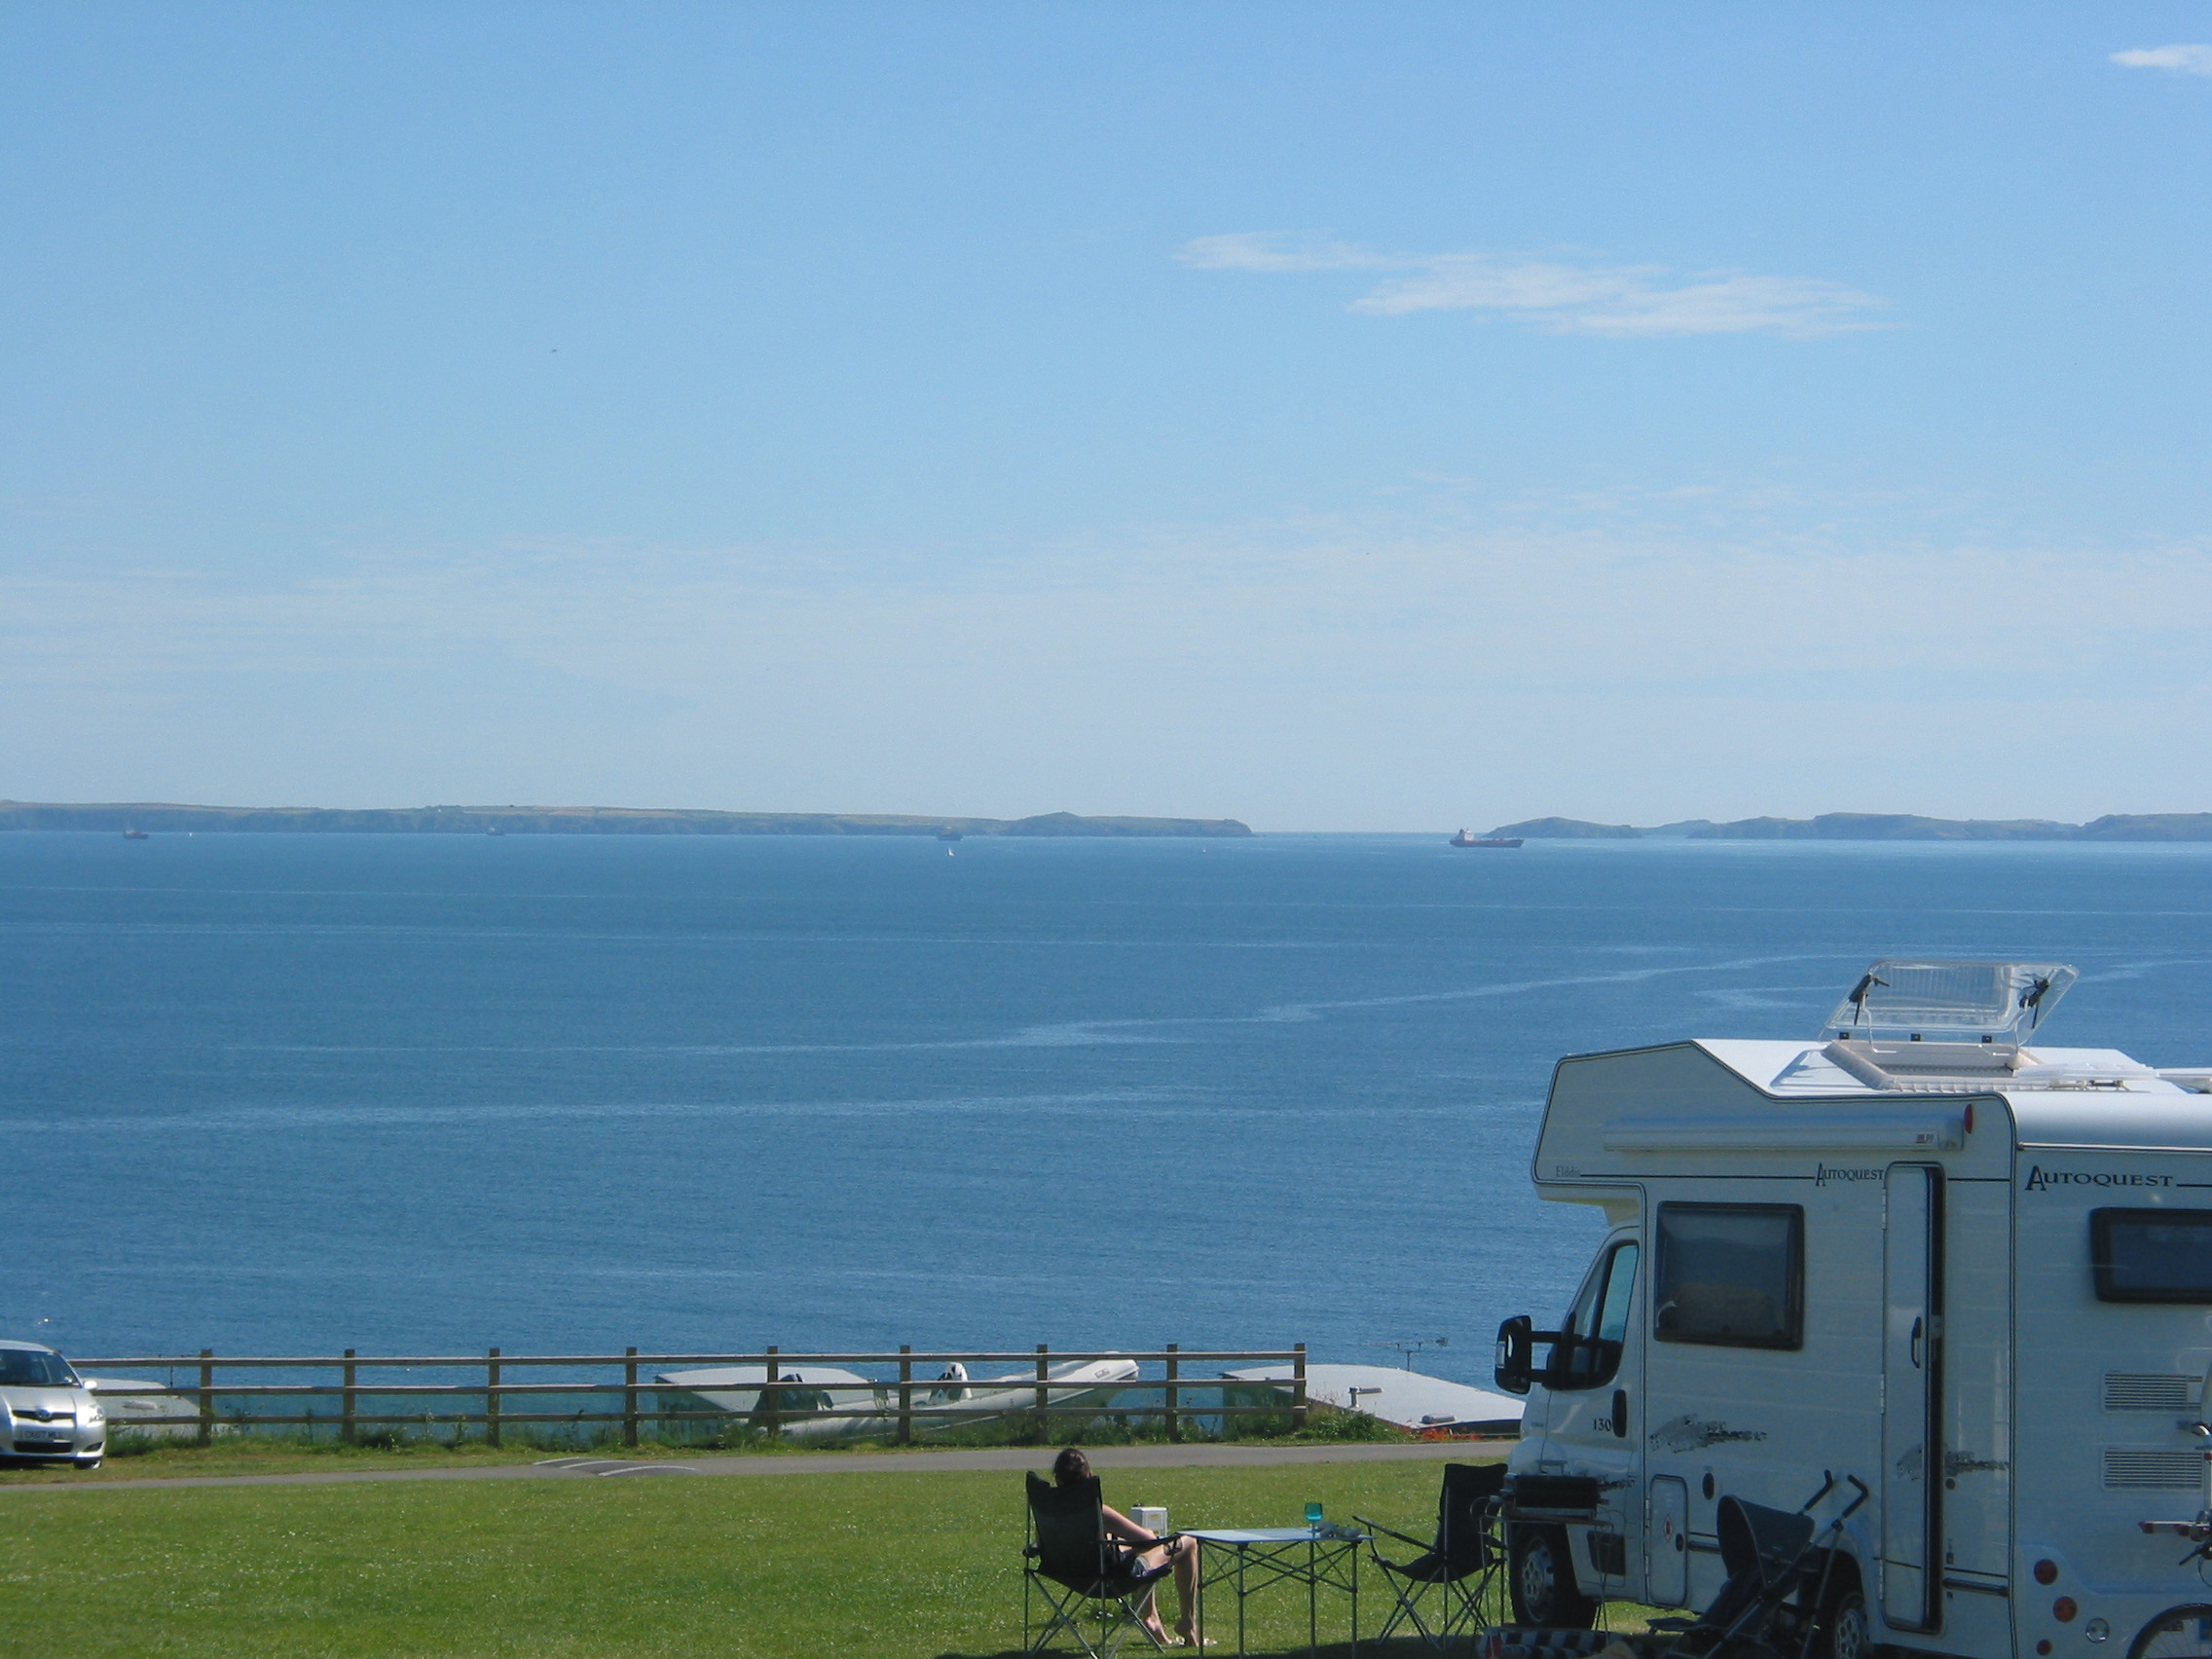 Enjoying the view from the caravan field